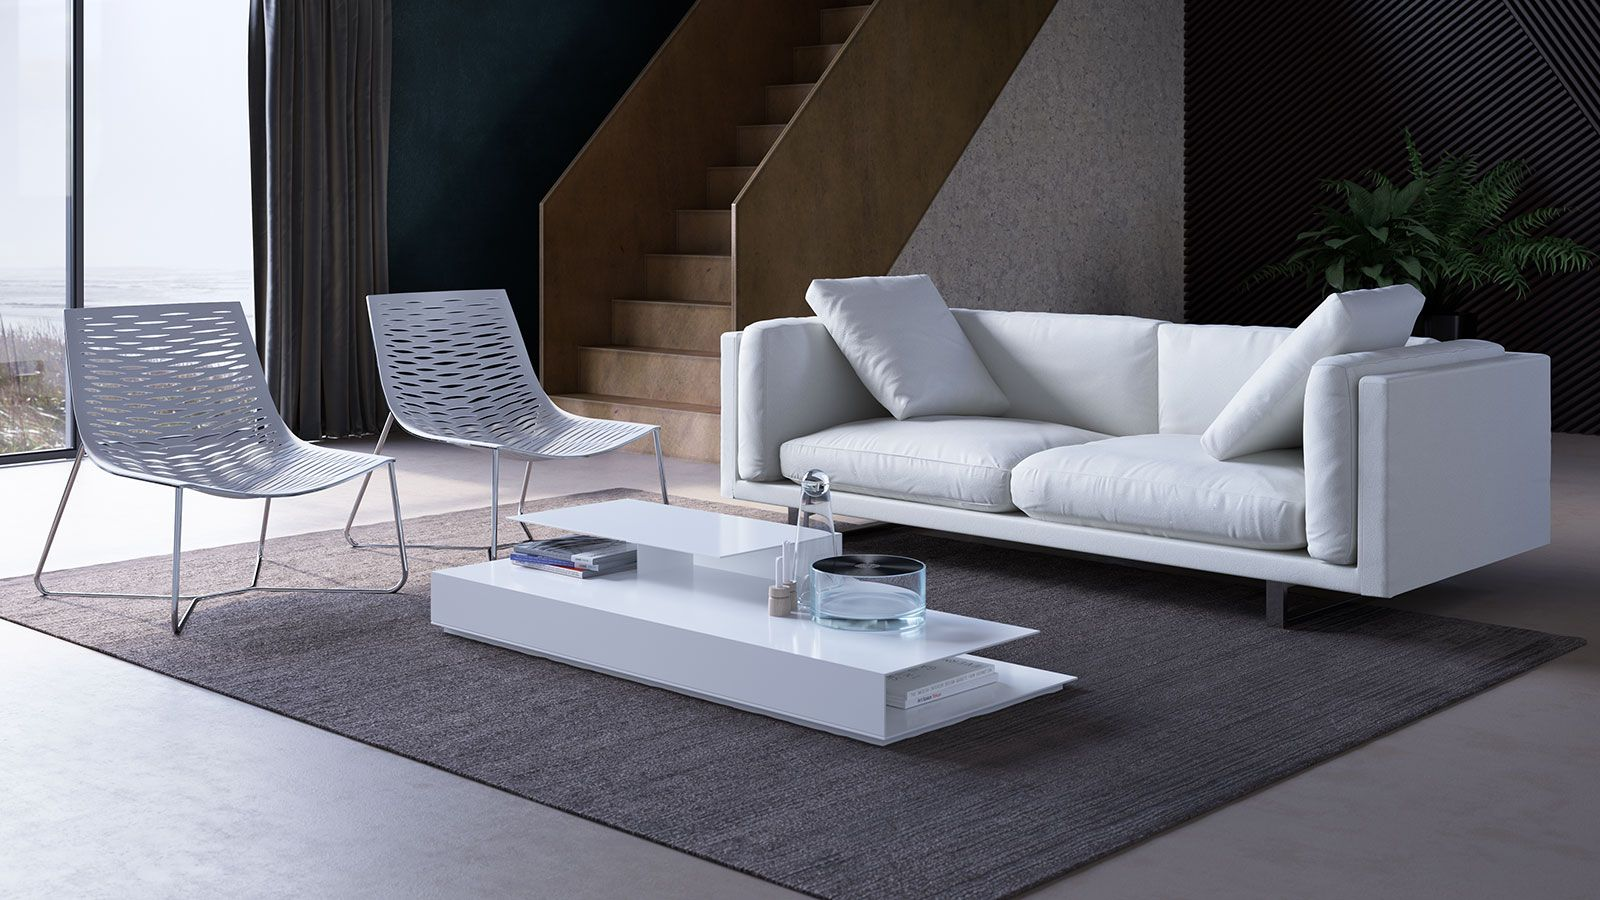 With a hidden support at the center of the long rectangular Acton Coffee Table, this table seems to float despite its full base, two tiers, and abundant storage space. Finished in either high-gloss lacquer or combination natural wood veneers and metallic painted finishes, the Acton features mitre-folded construction to hide joints and perfectly finished edges. Its clean geometry recalls the Asian design influences of mid-century Italian furniture.